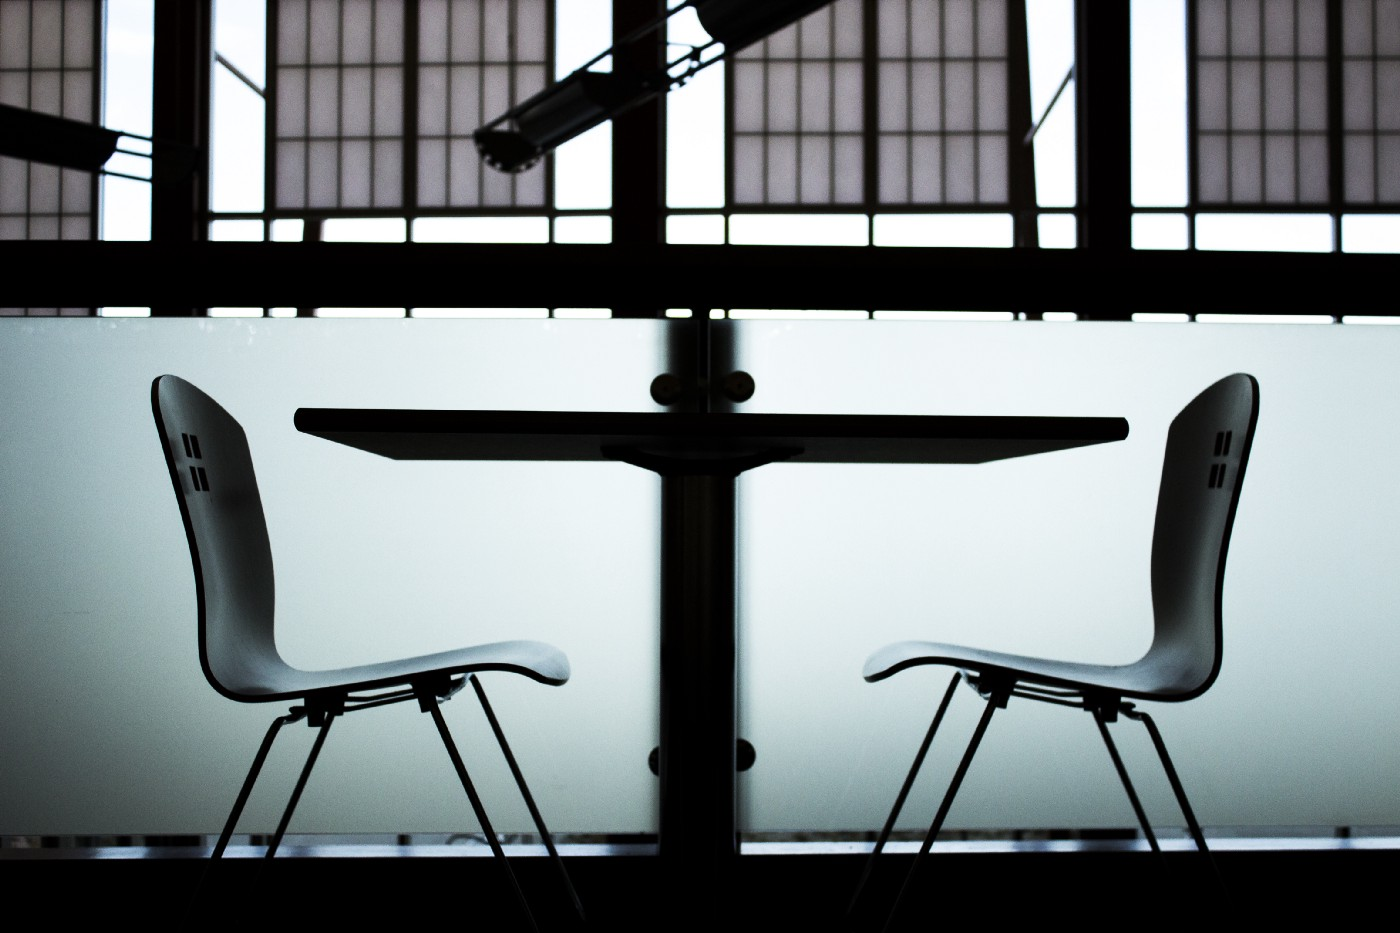 Two chairs at a table facing each other.